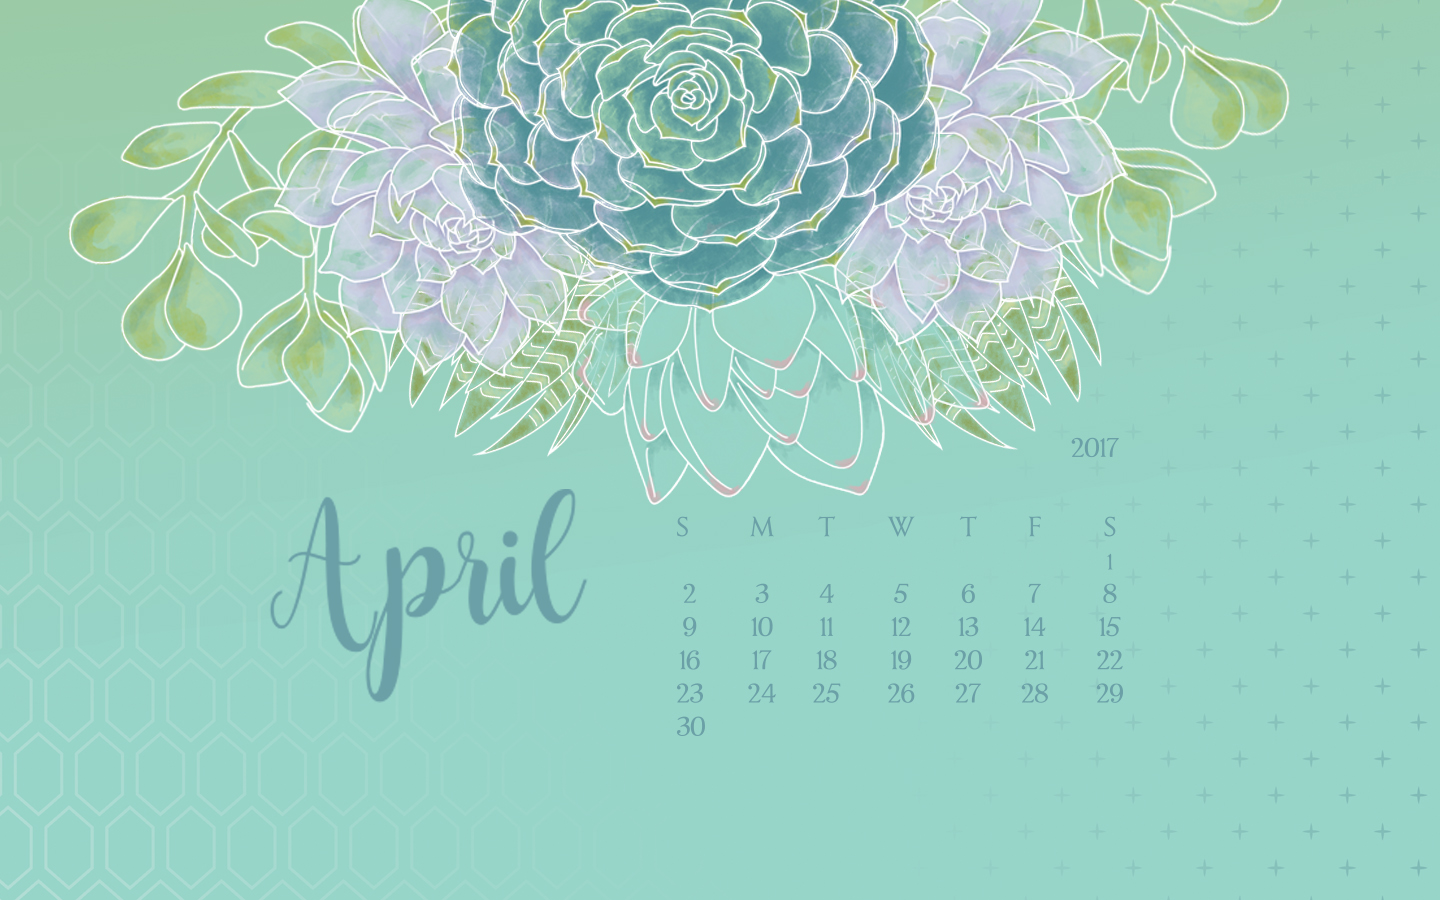 April Calendar Screensaver : Free april desktop calendar screensaver lyndacreates